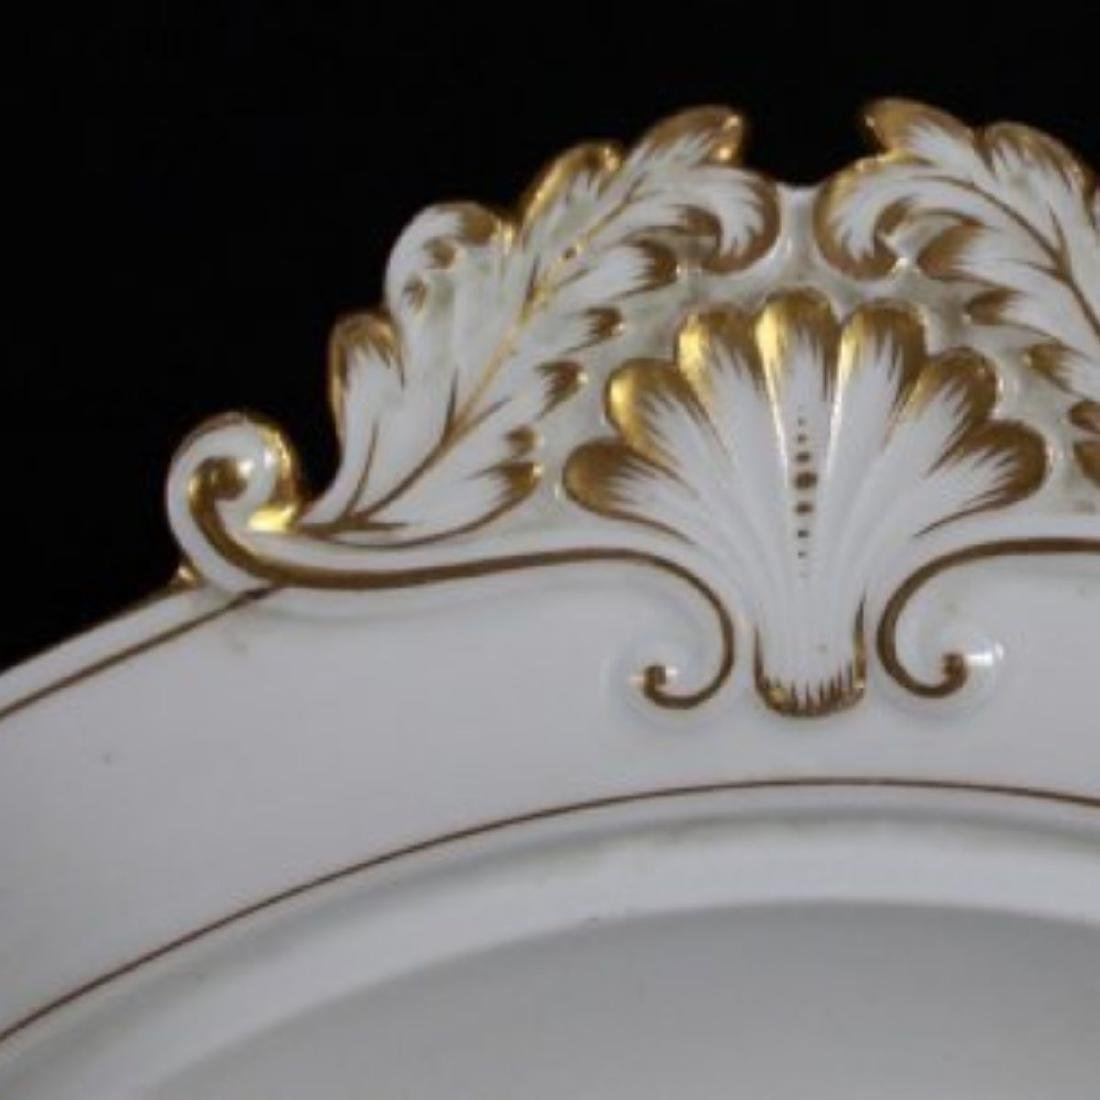 19TH C MEISSEN PART DINER SERVICE WITH THE UNDER GLAZED - 2